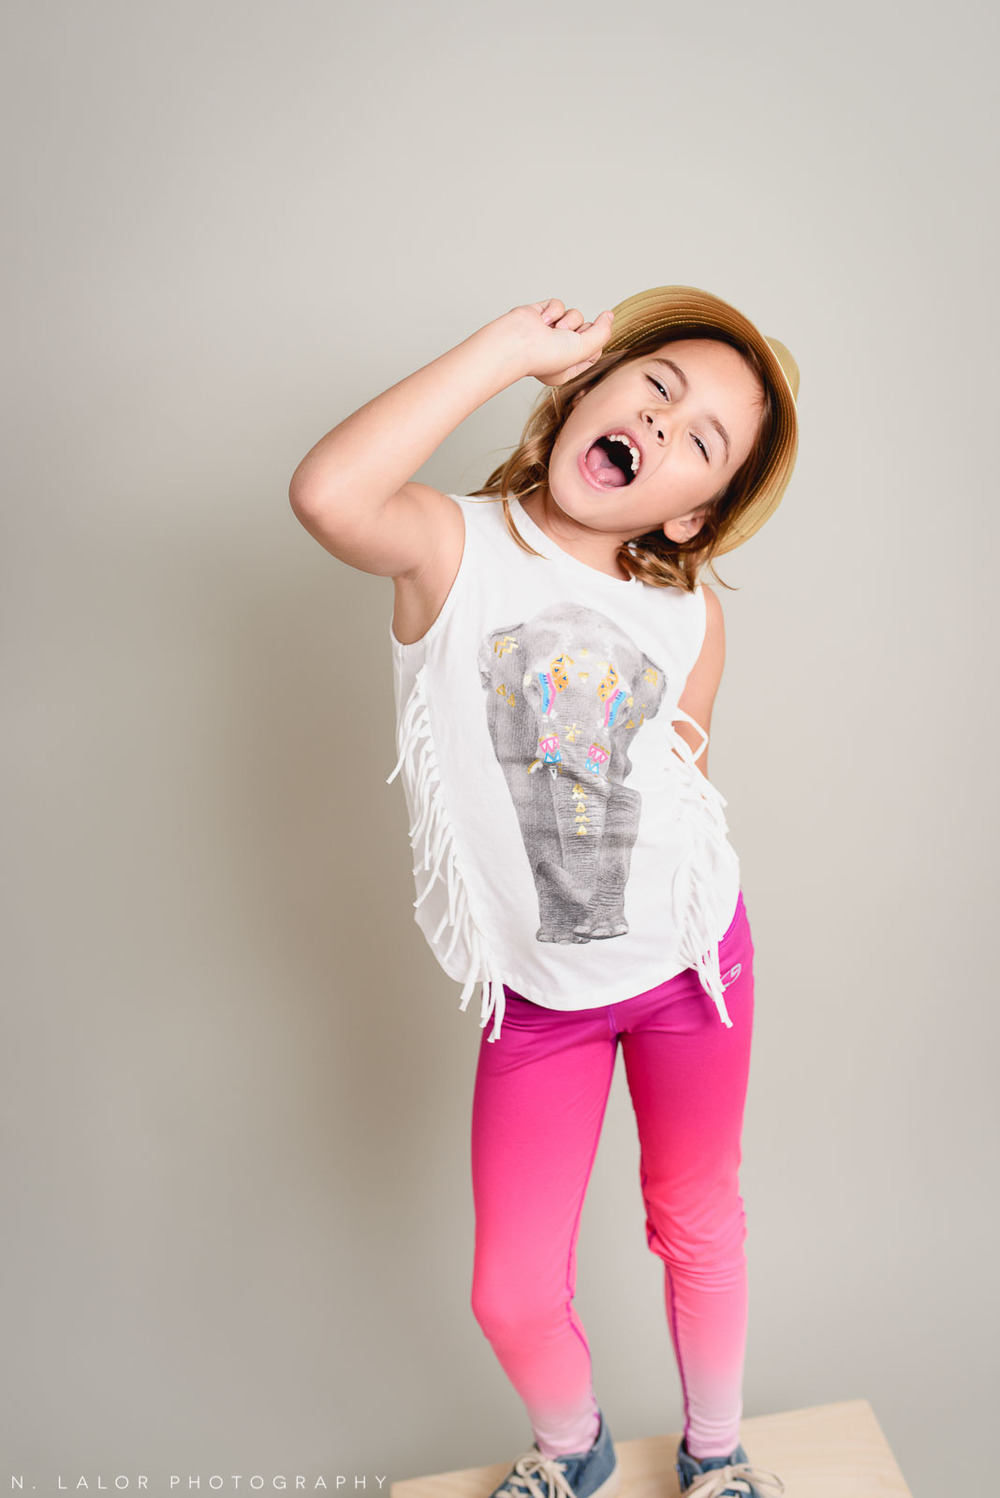 Rock and roll star! Editorial studio portrait of 6-year old girl by N. Lalor Photography in Greenwich, Connecticut.